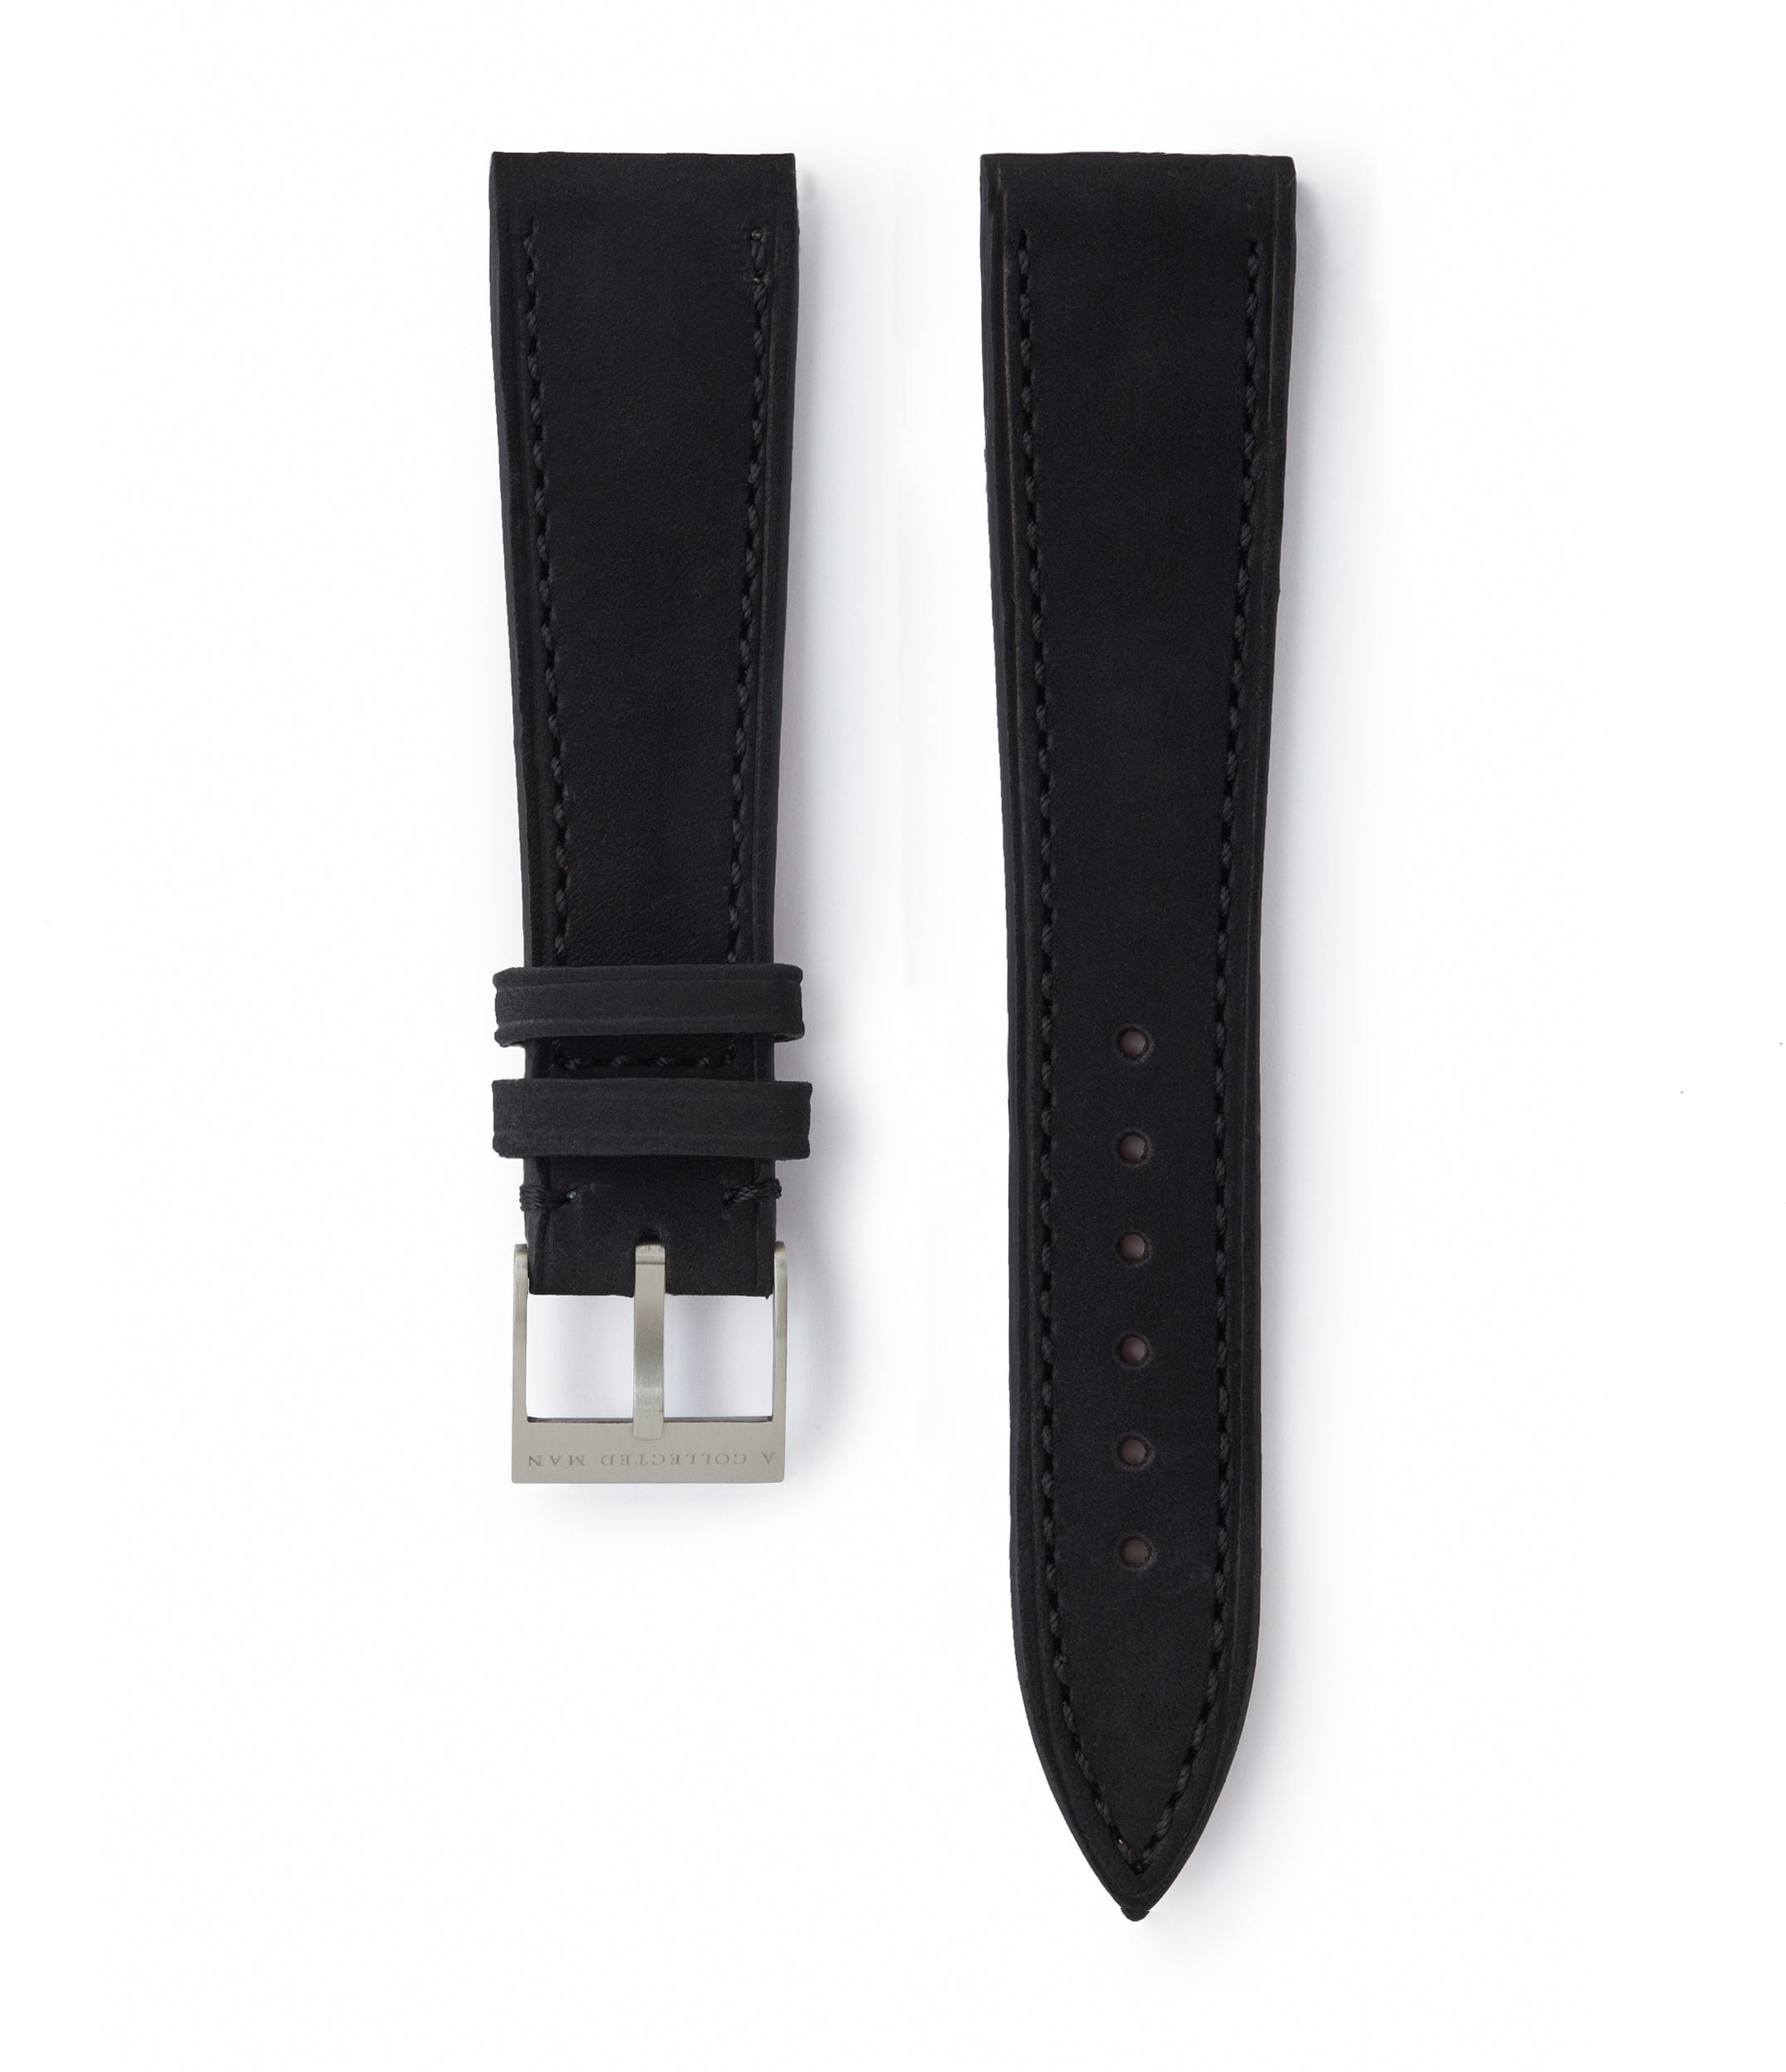 buy black nubuck leather watch strap Sofia Molequin for sale order online at A Collected Man London